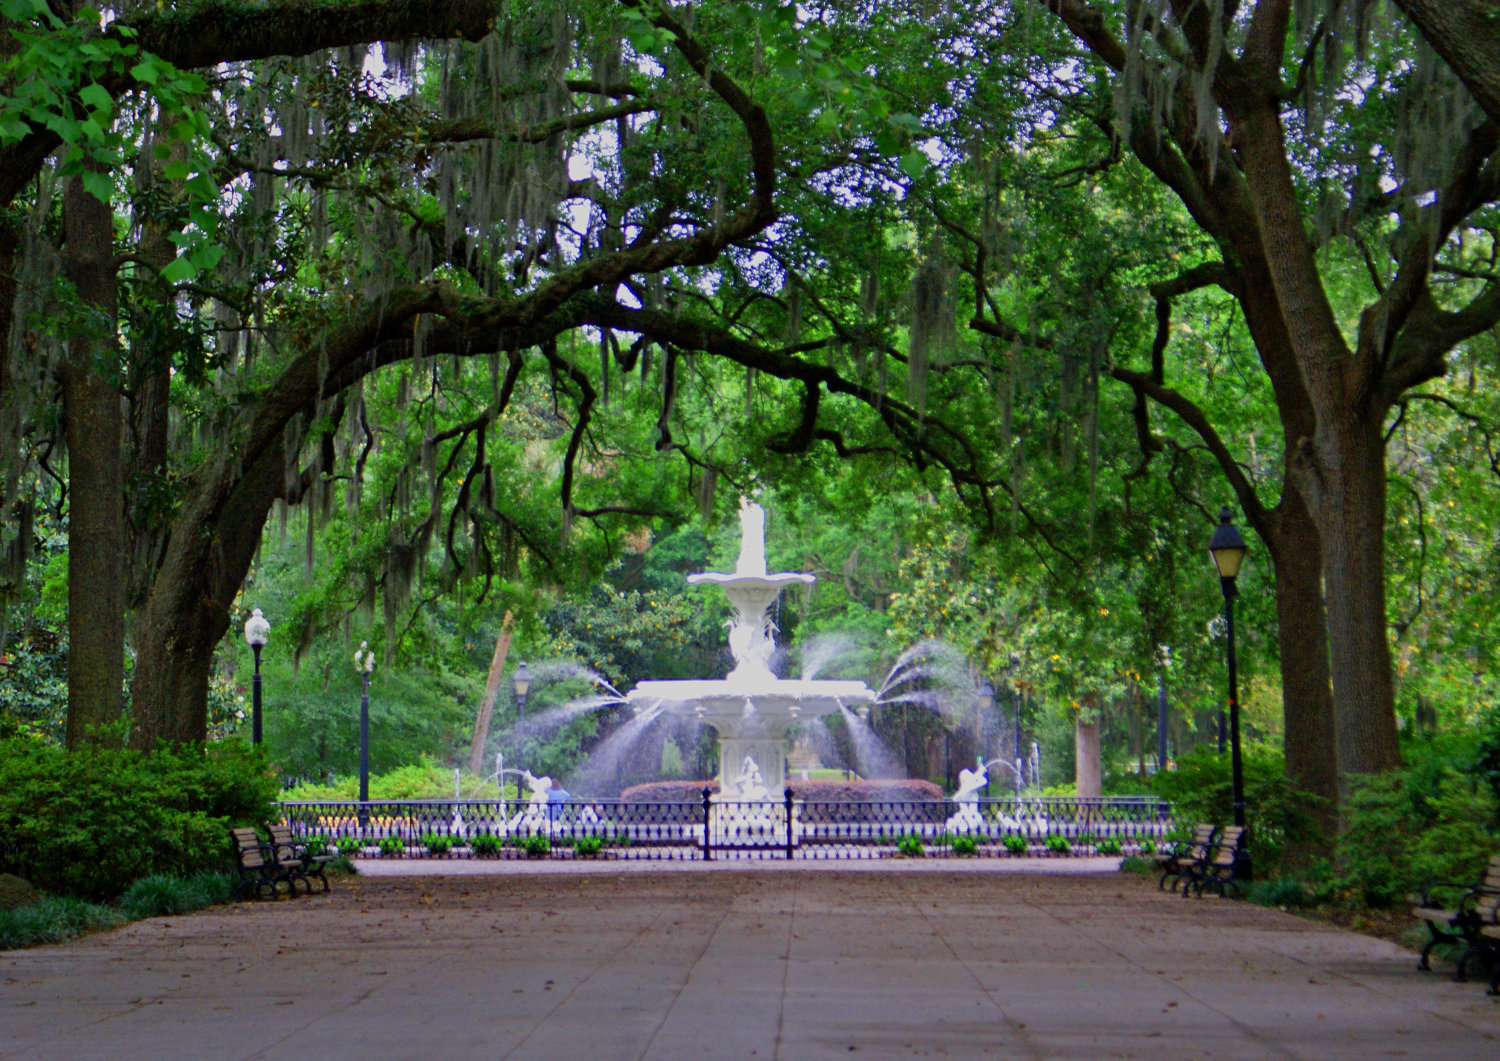 Savannah Sightseeing, Savannah Family Destinations, Savannah Tourist Spots, Visit Savannah